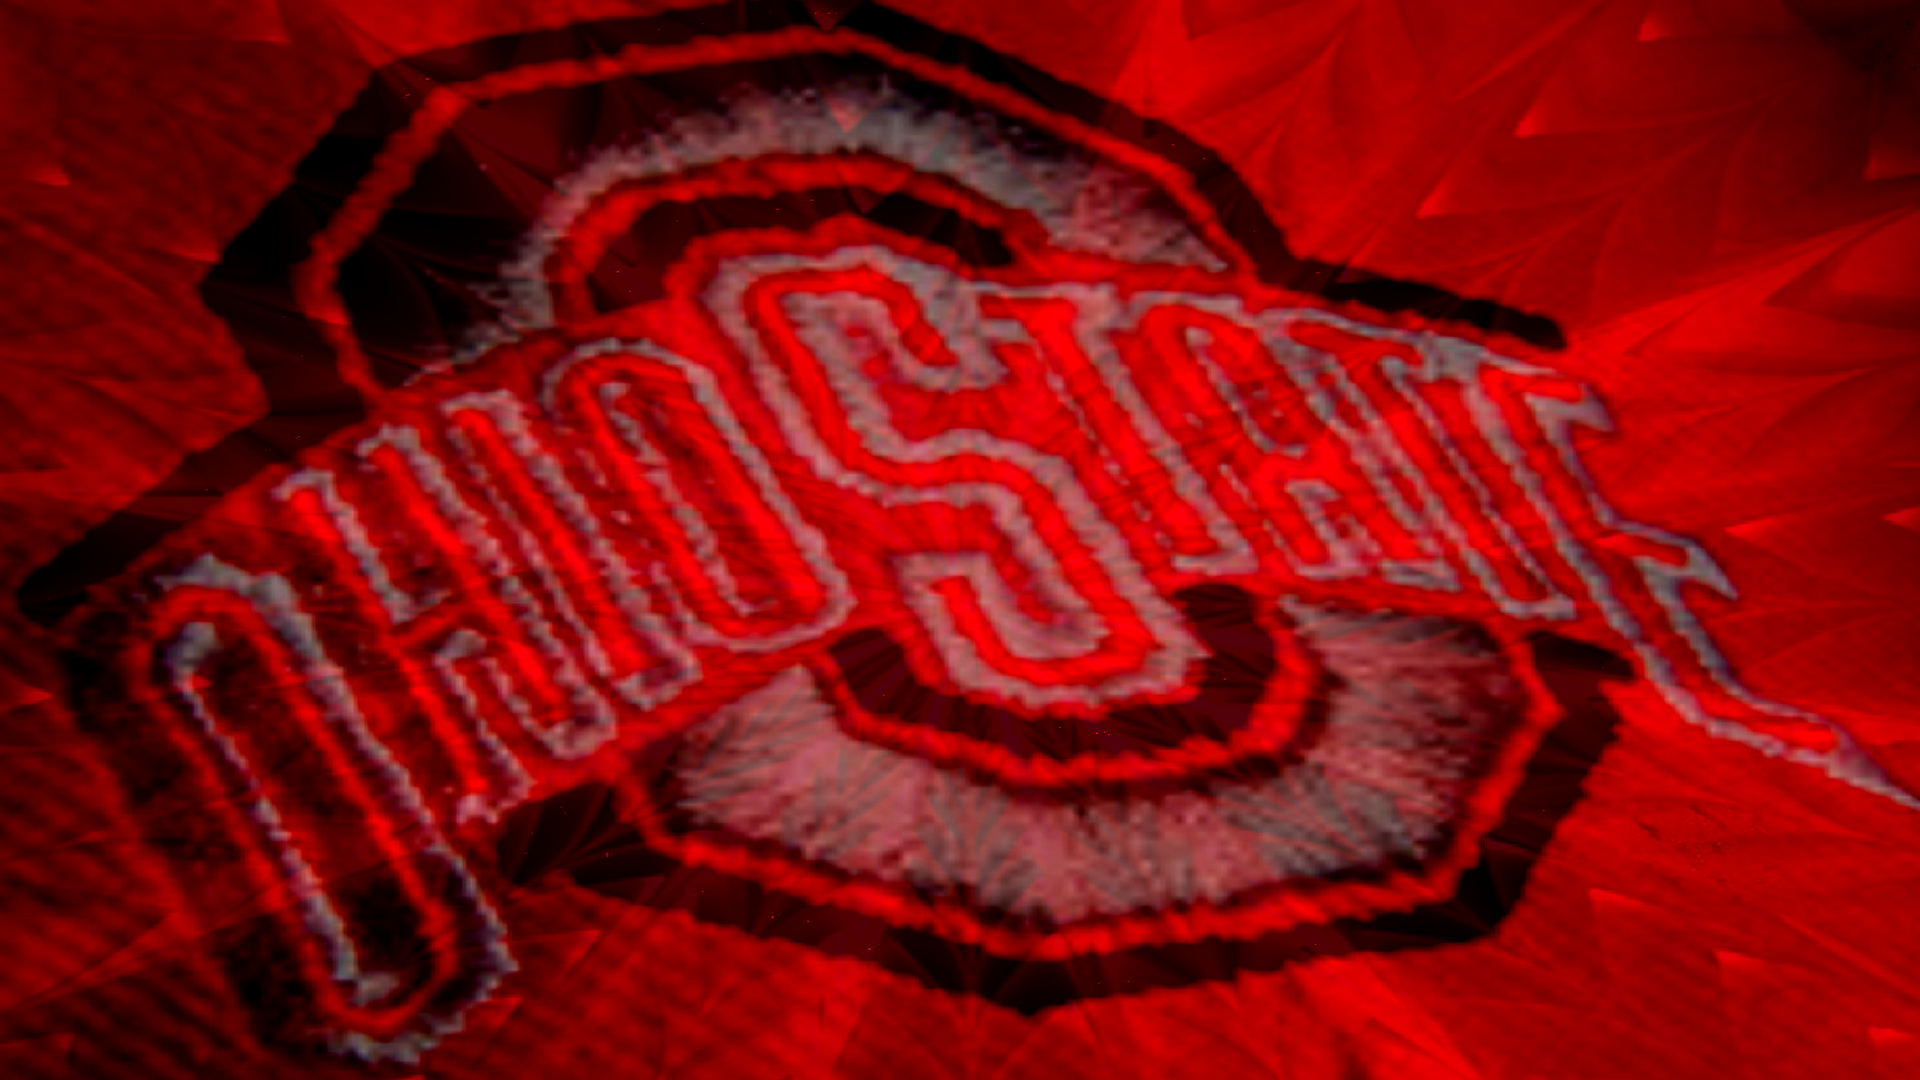 Ohio State Buckeyes Images LARGE GRAY BLOCK O OHIO STATE HD Wallpaper And Background Photos